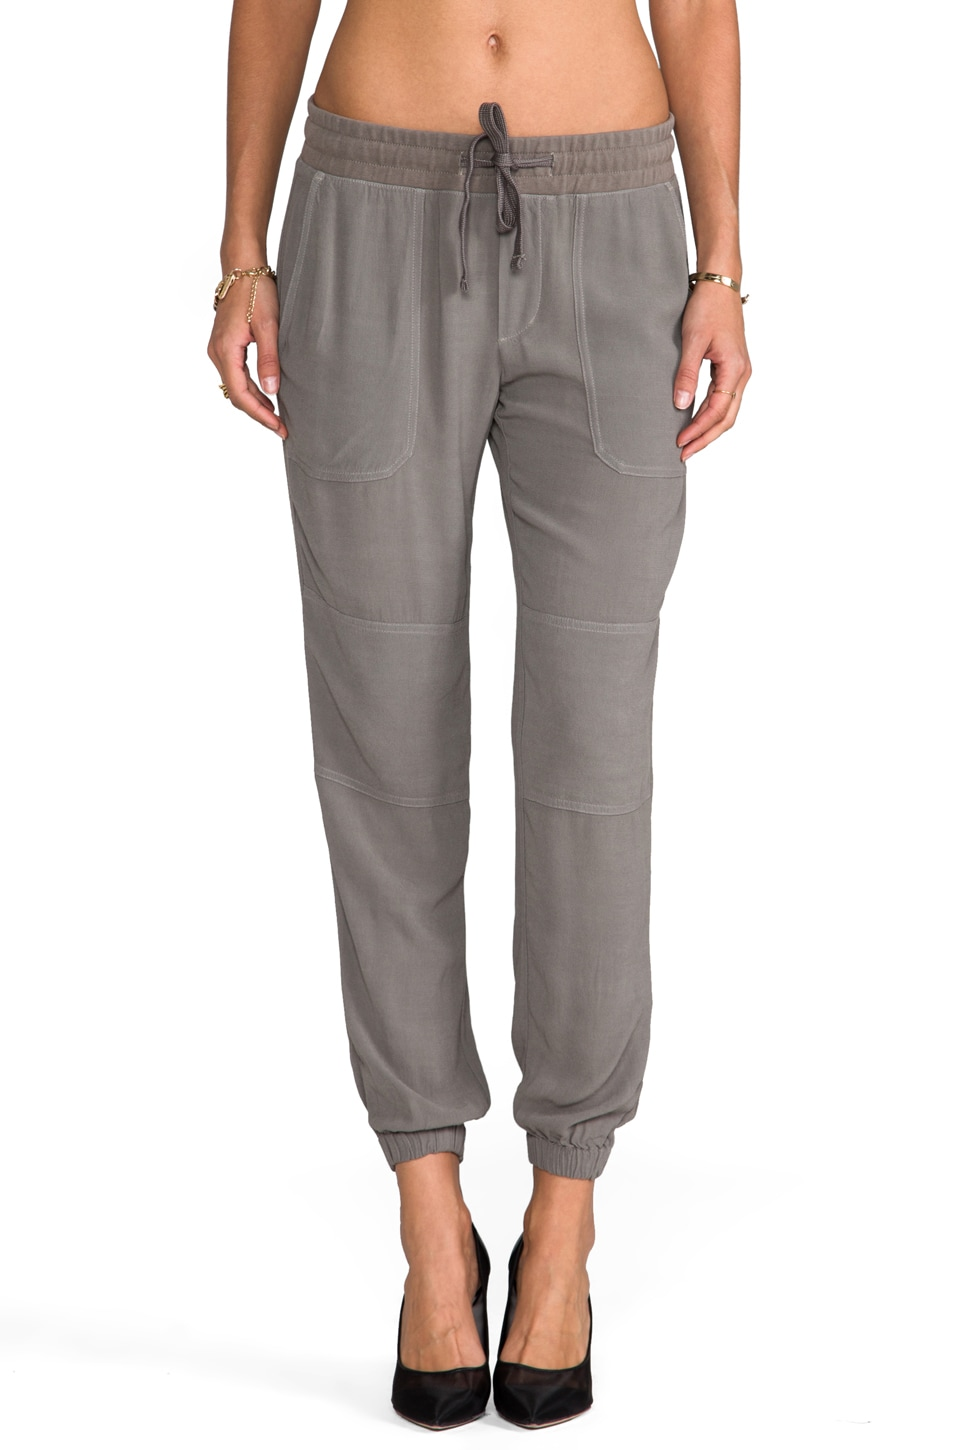 James Perse Crepe Surplus Pant in Spruce